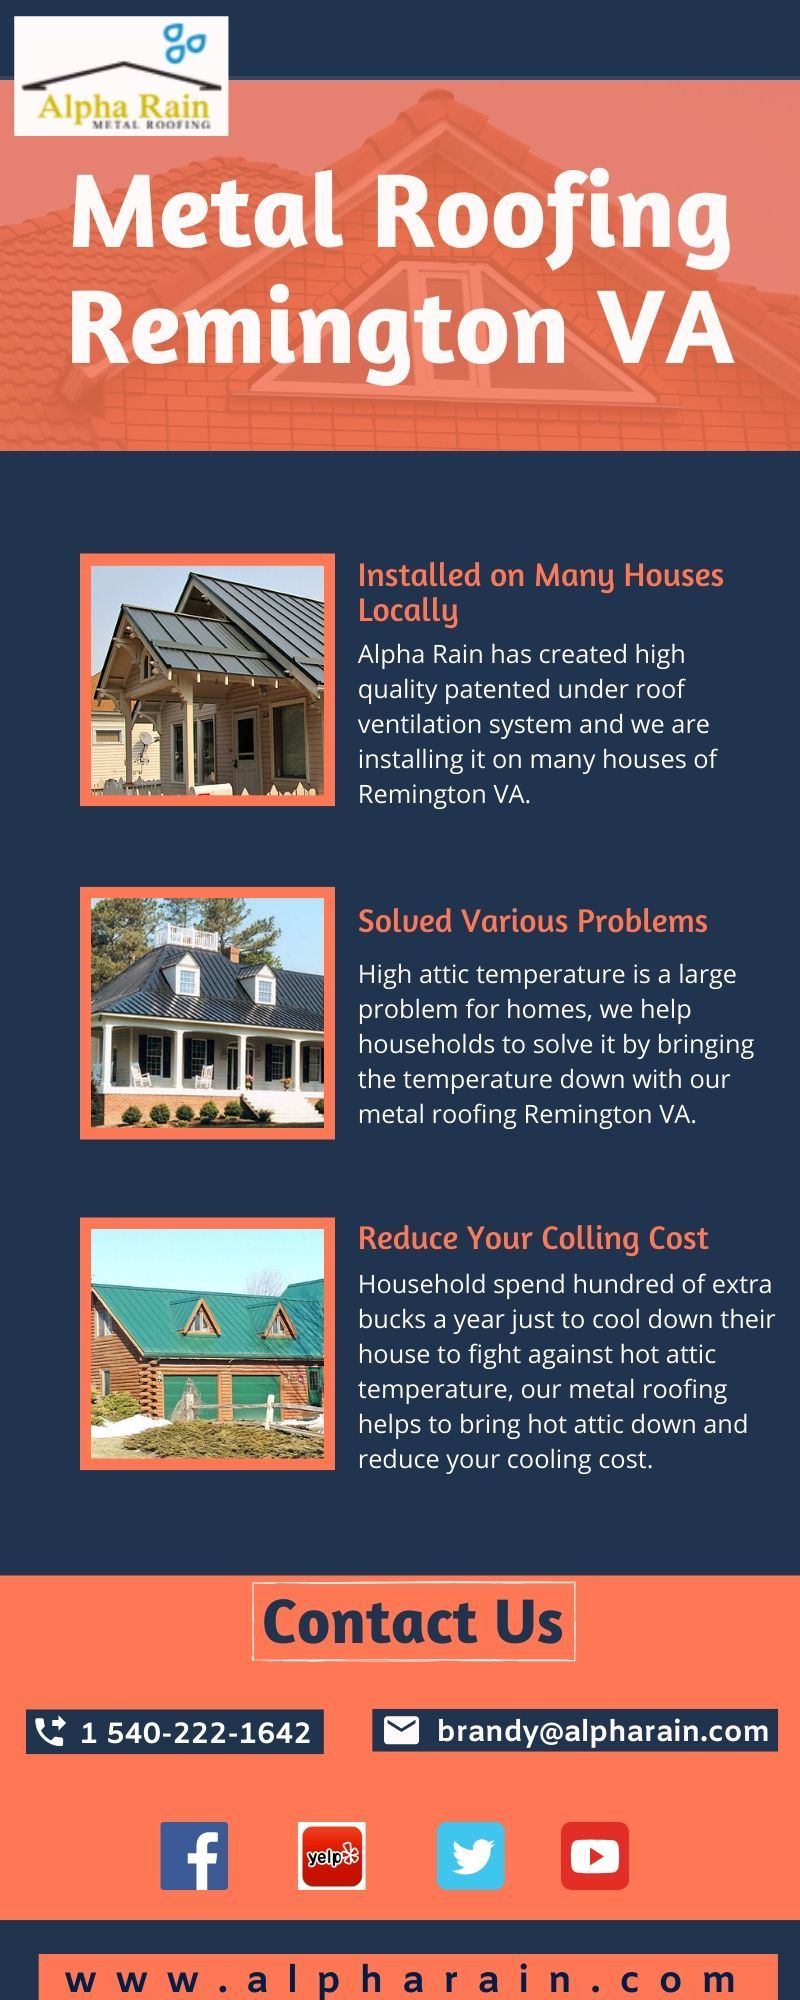 Metal Roofing Company Install Patented Roof Ventilation System Metal Roof Roofing Ventilation System